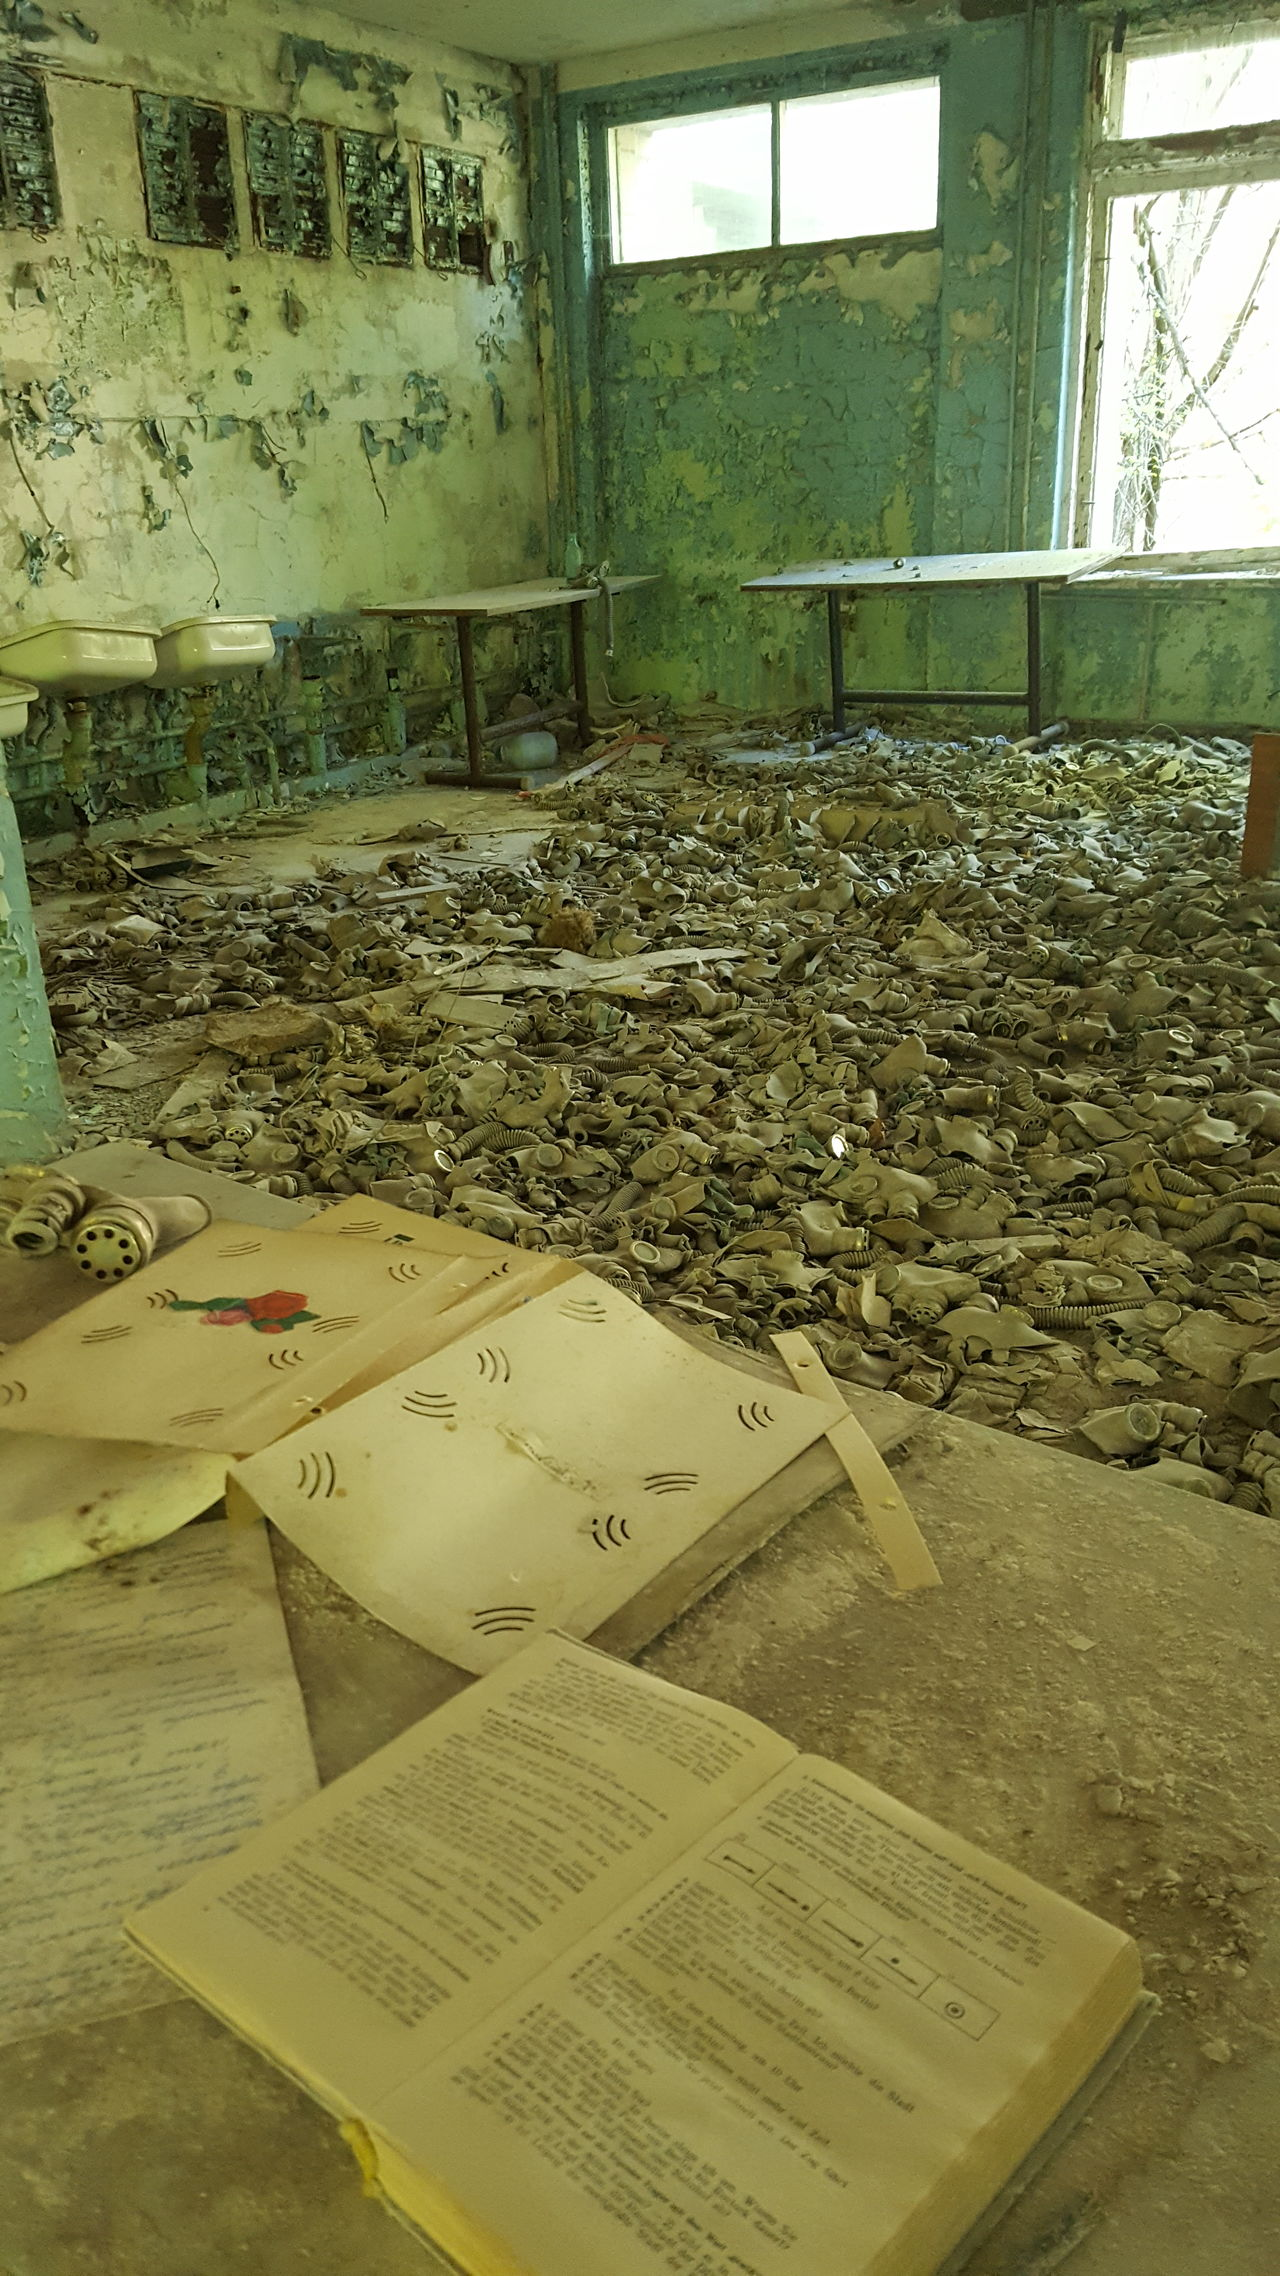 Room full of gas masks Chernobyl exclusion zone Ghost Town Abandoned Lost Places Lost Place Eyem Best Shots EyEmNewHere Soviet Ukraine Chernobyl Pripryat Nuclear Book Ruin Old Chernobyl Exclusion Zone Eerie Eerie Beautiful Run Down Broken